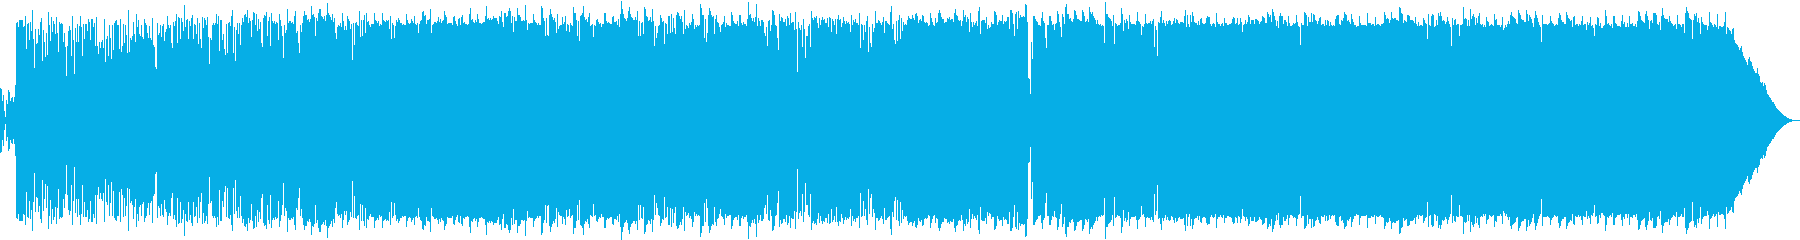 Triple time mellow love song's reproduced waveform